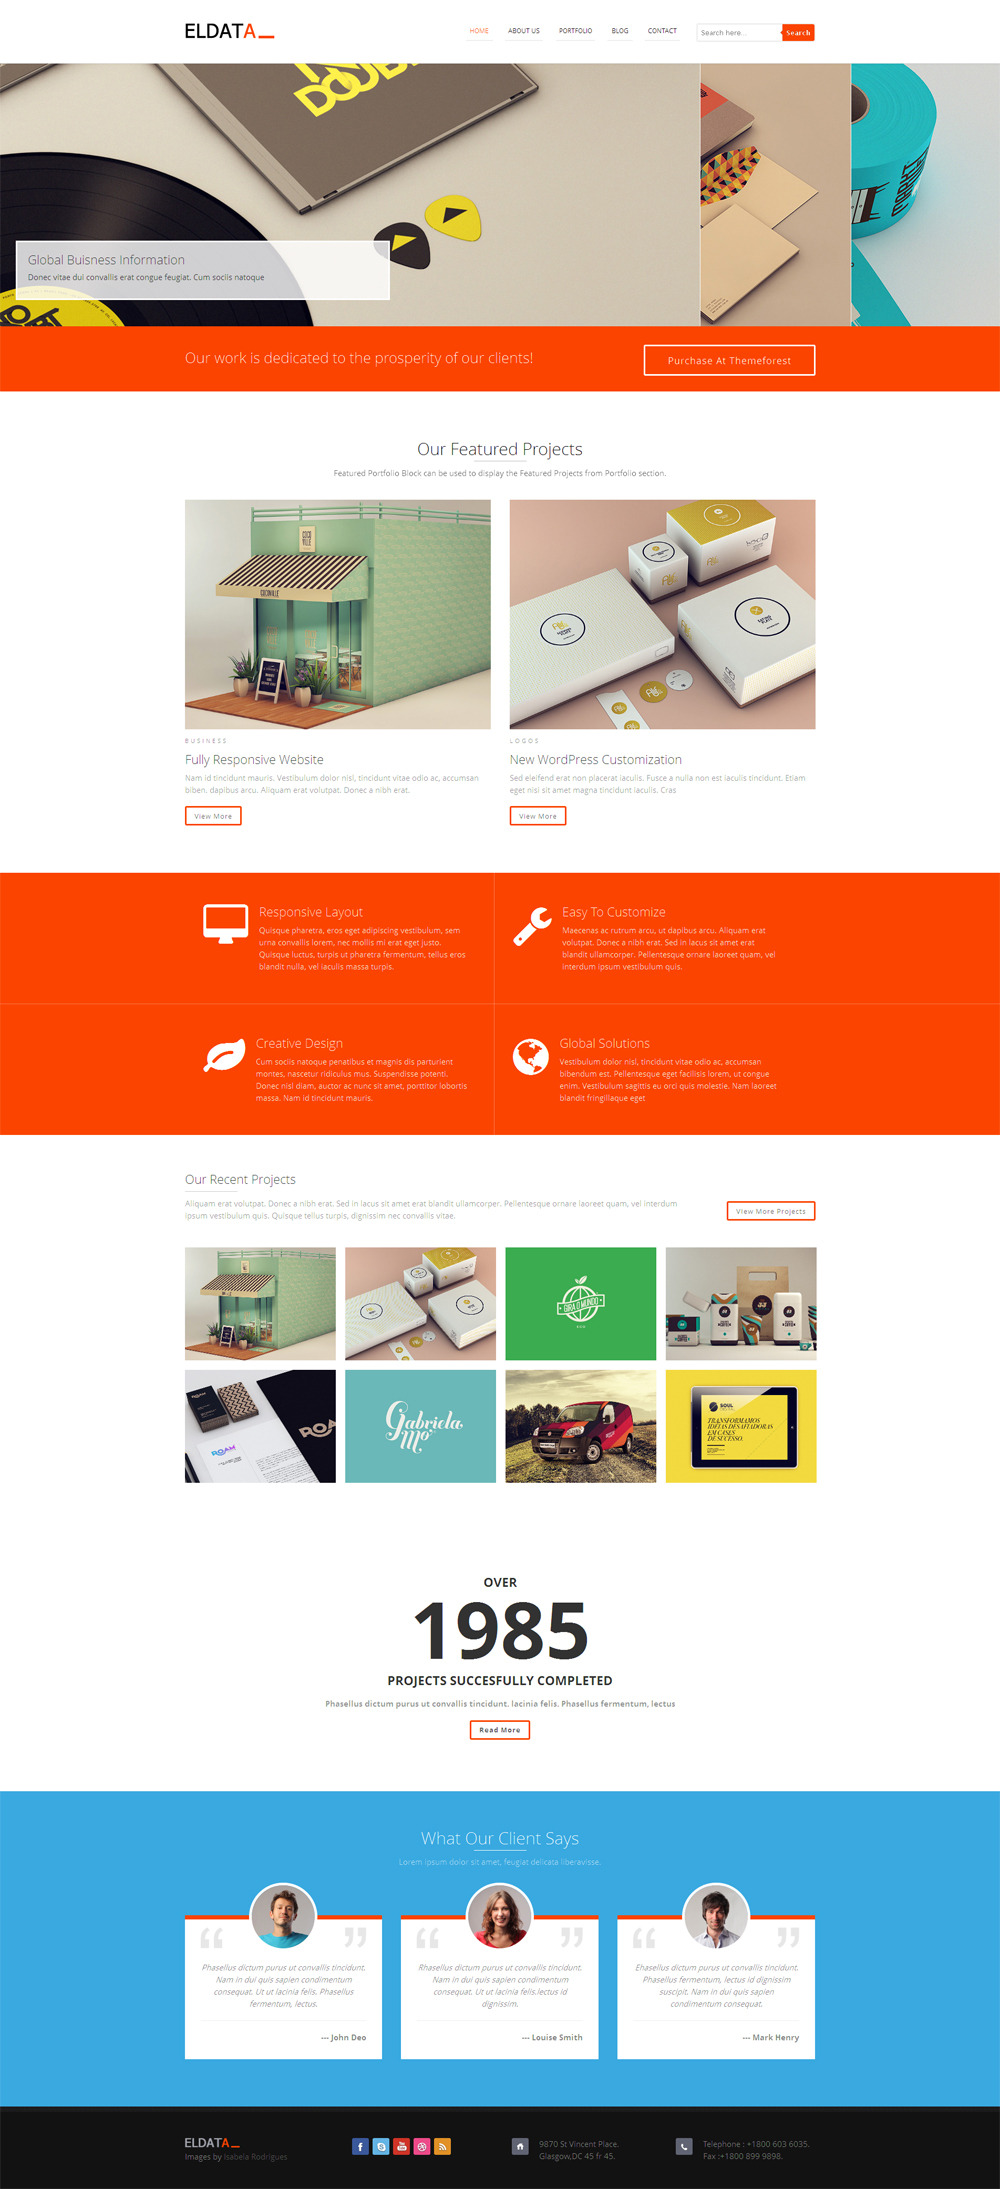 Excellent 1 Page Website Template Tiny 1 Year Experience Resume Format Free Download Clean 10 Best Resume Samples 100 Dollar Bill Template Youthful 100 Template Blue1099 Template Excel Eldata   Responsive HTML Website Template By VenishaIT   ThemeForest